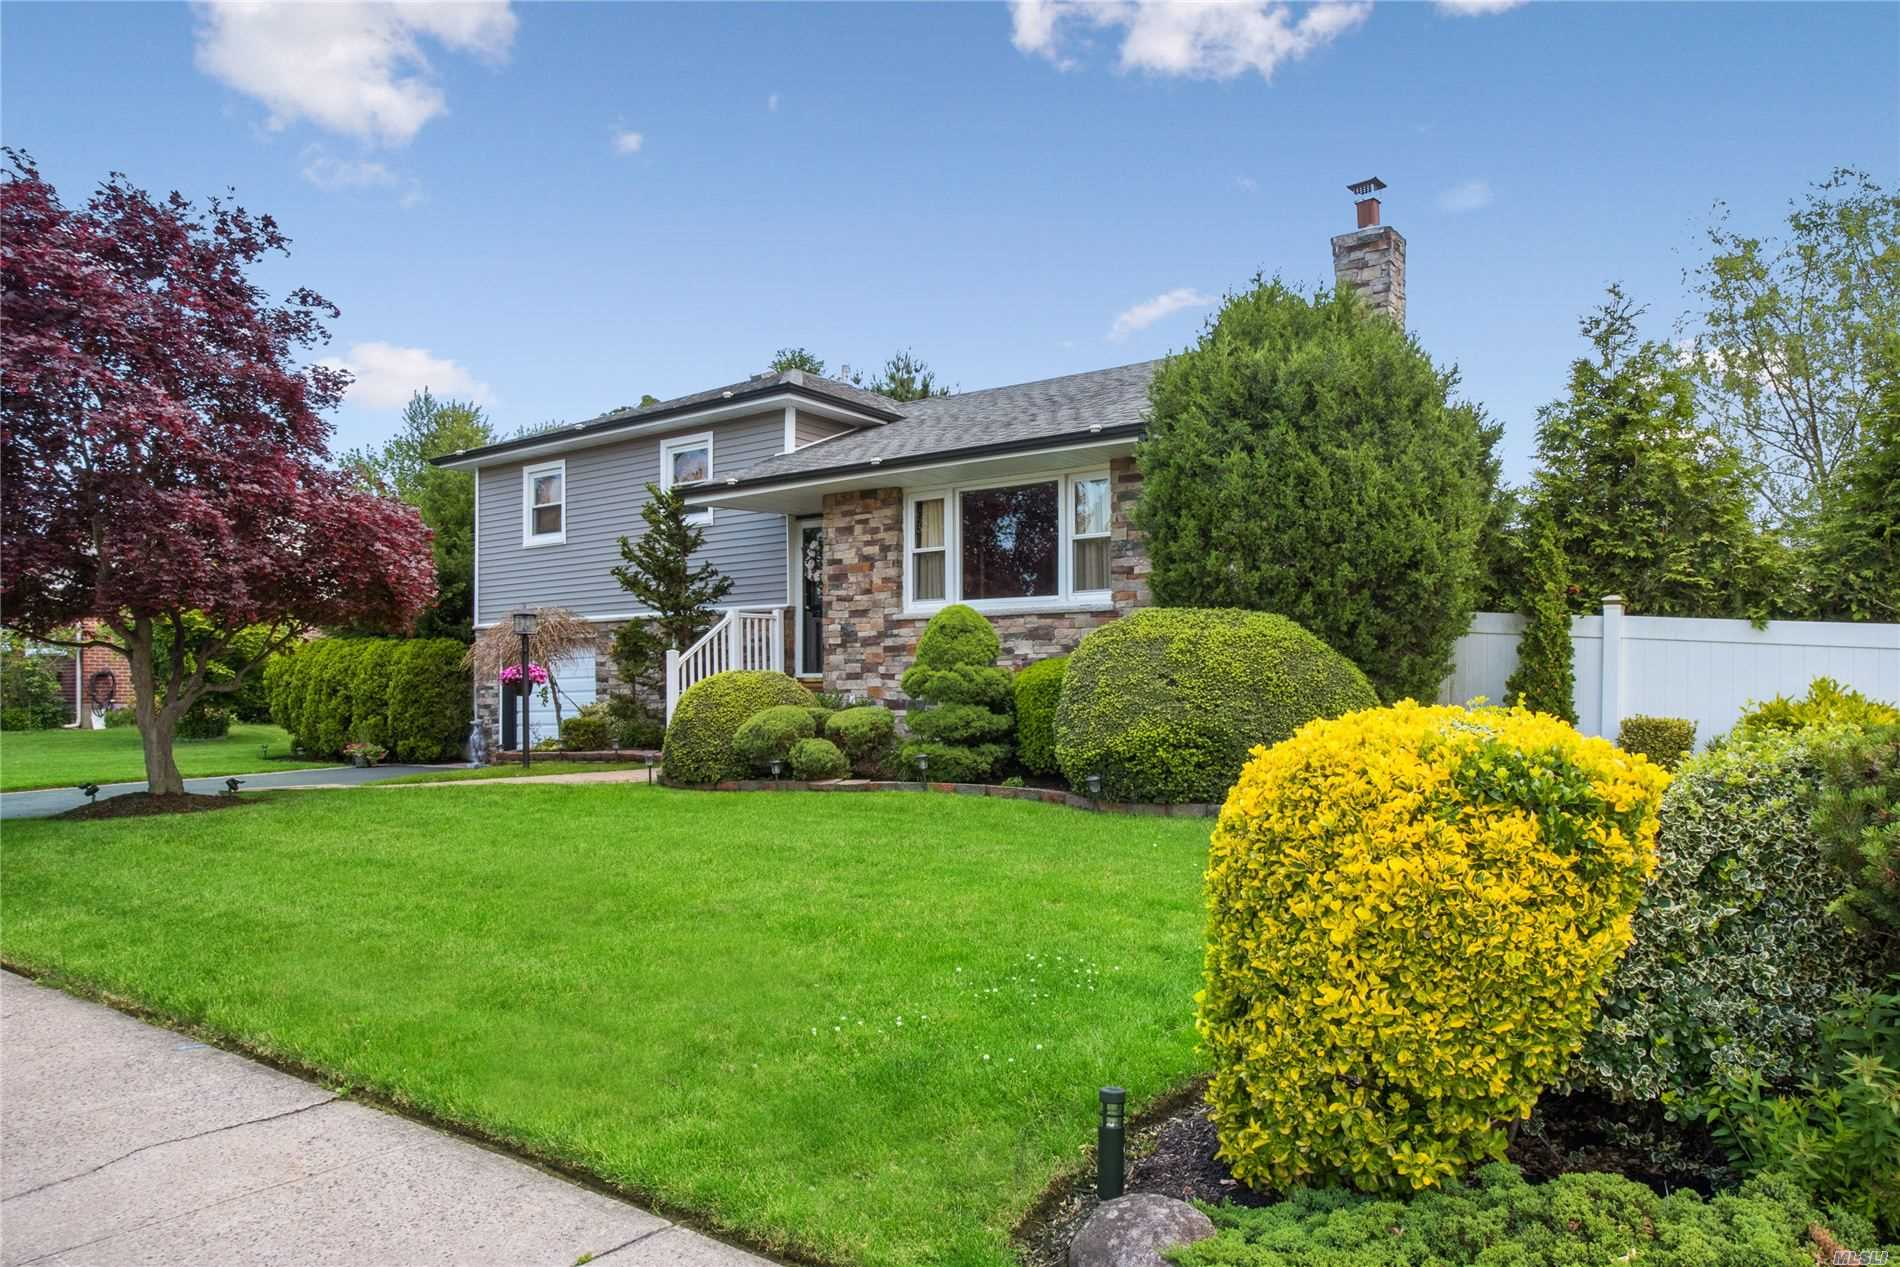 115 Vincent Rd, Hicksville, New York